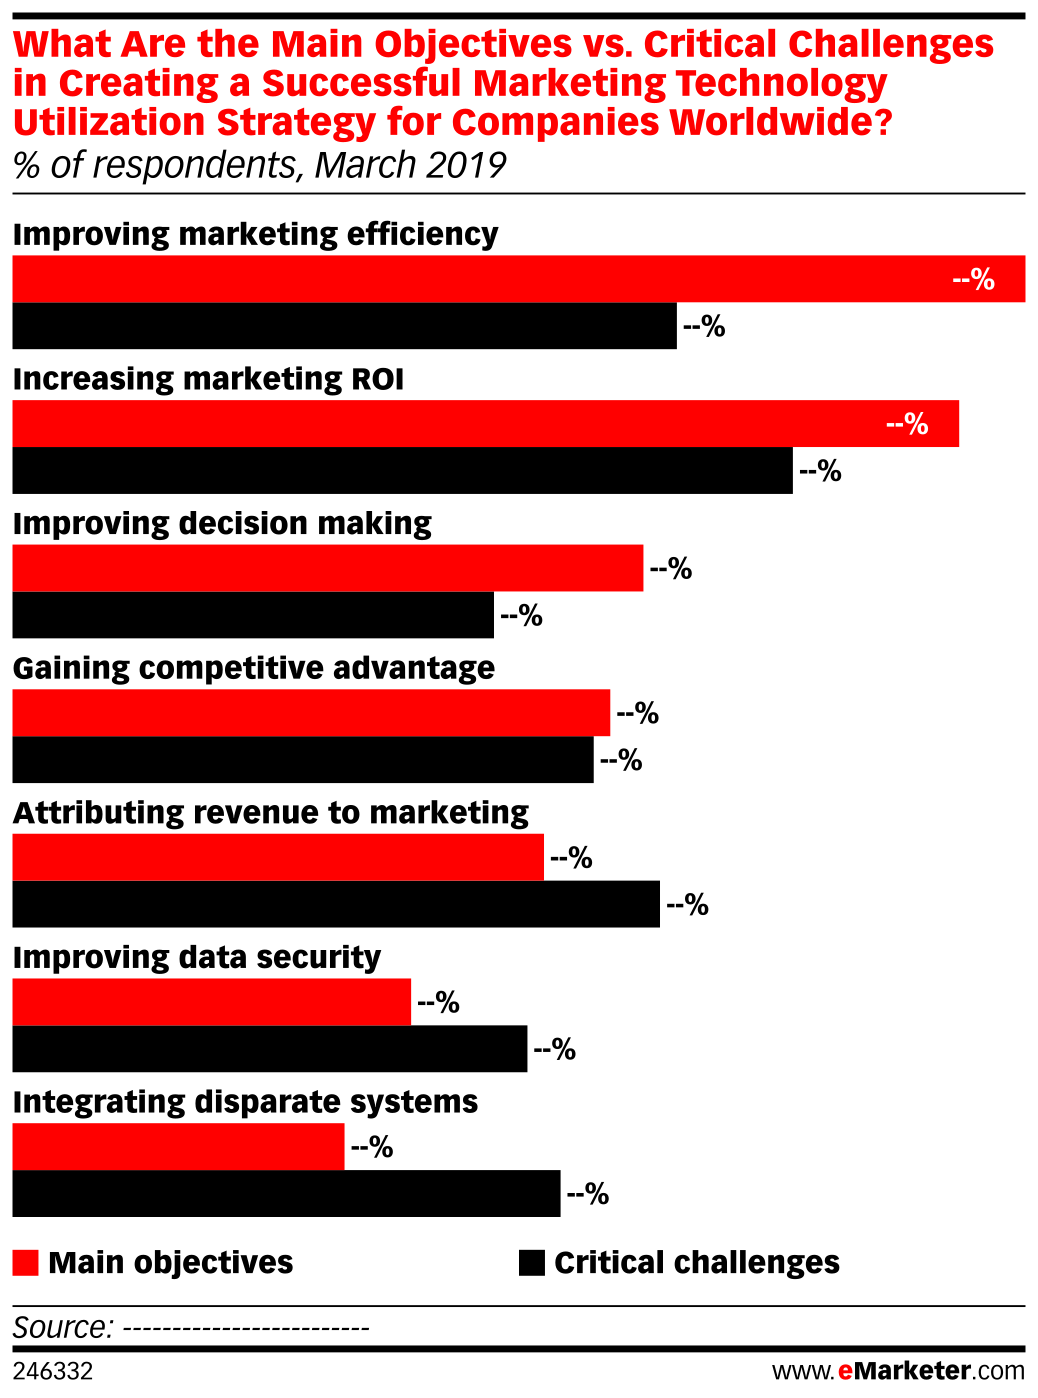 What Are the Main Objectives vs. Critical Challenges in Creating a Successful Marketing Technology Utilization Strategy for Companies Worldwide? (% of respondents, March 2019)